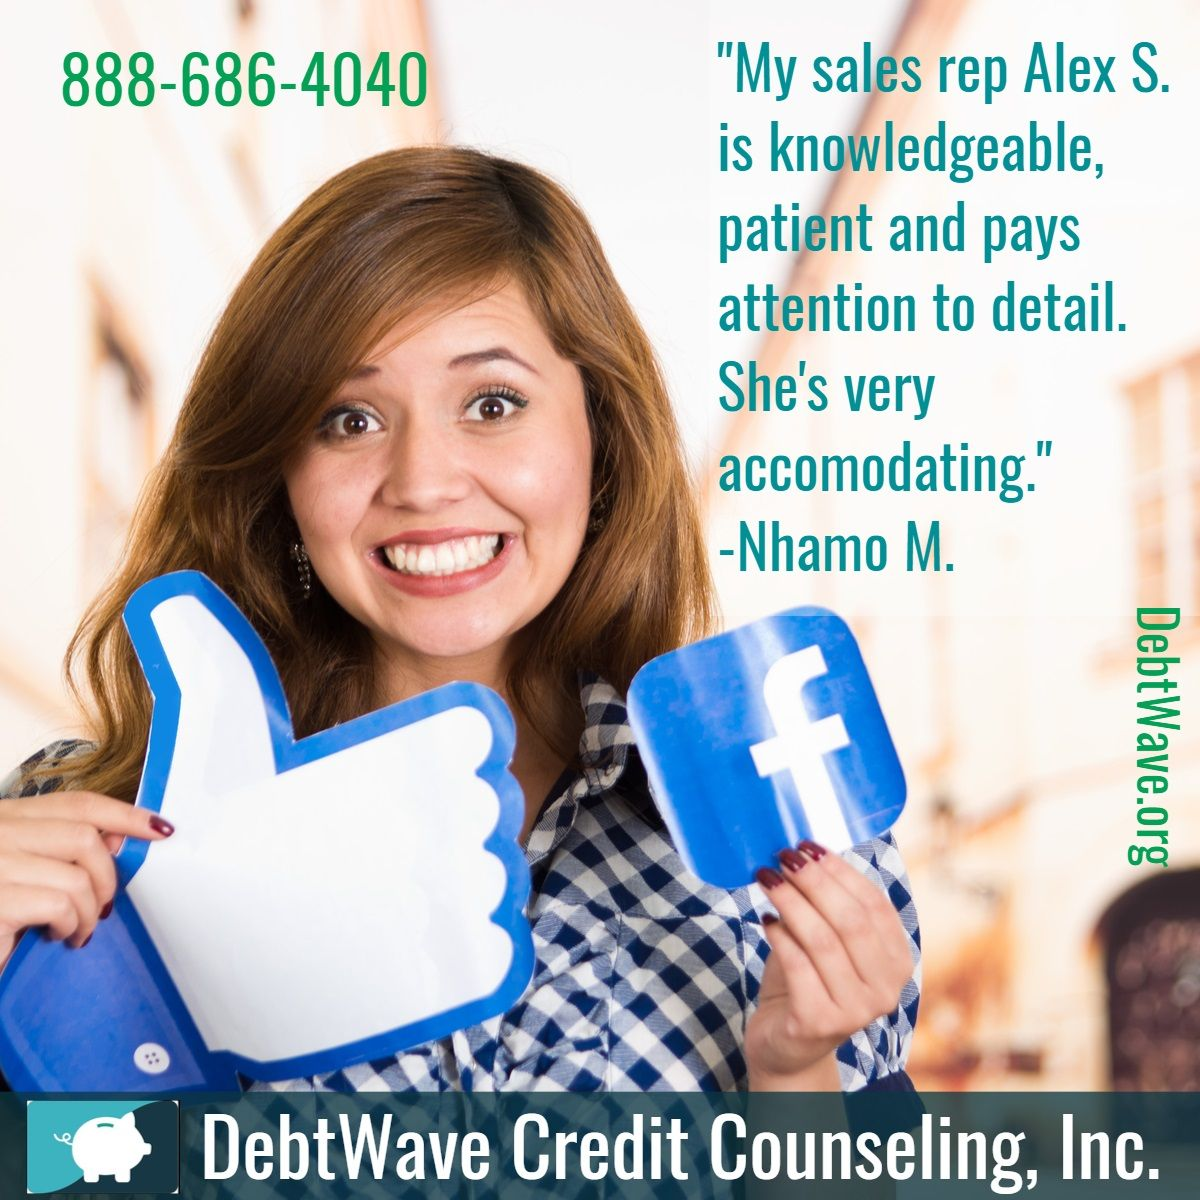 Struggling with debt? Need help creating a budget that